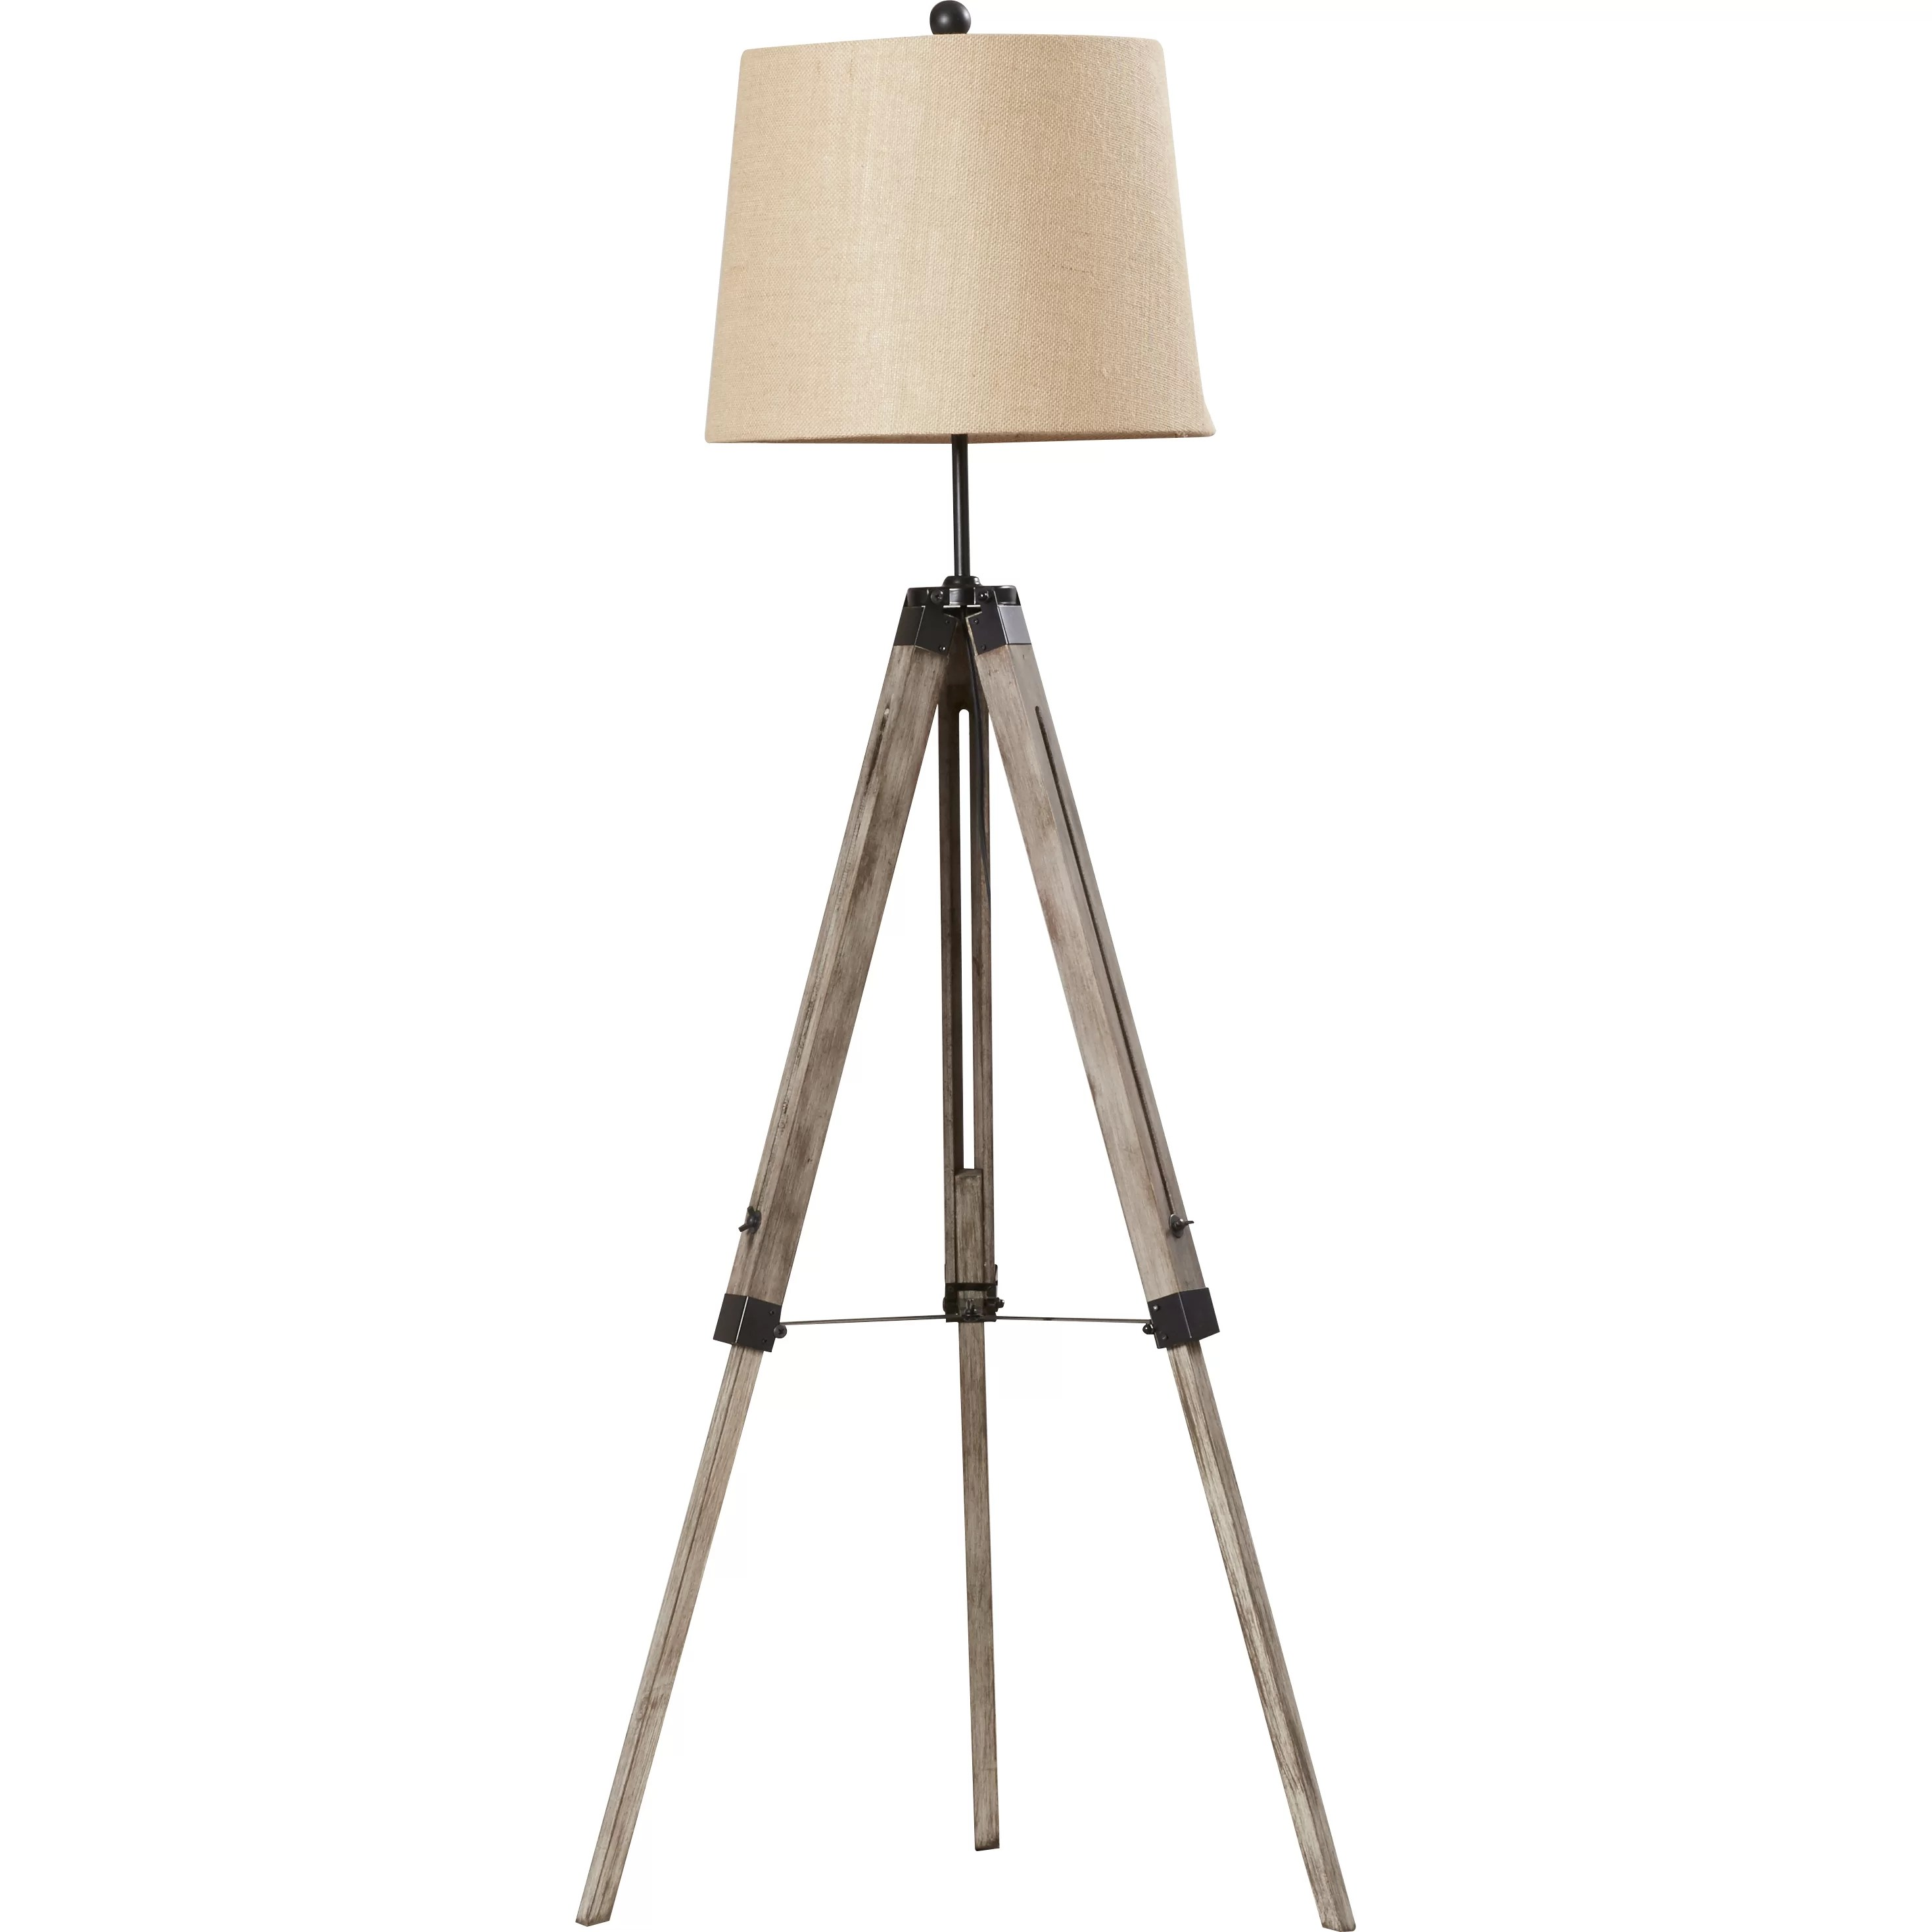 Tripod Floor Lamps Sale Brayden Studio Seaborn 63 Quot Tripod Floor Lamp And Reviews